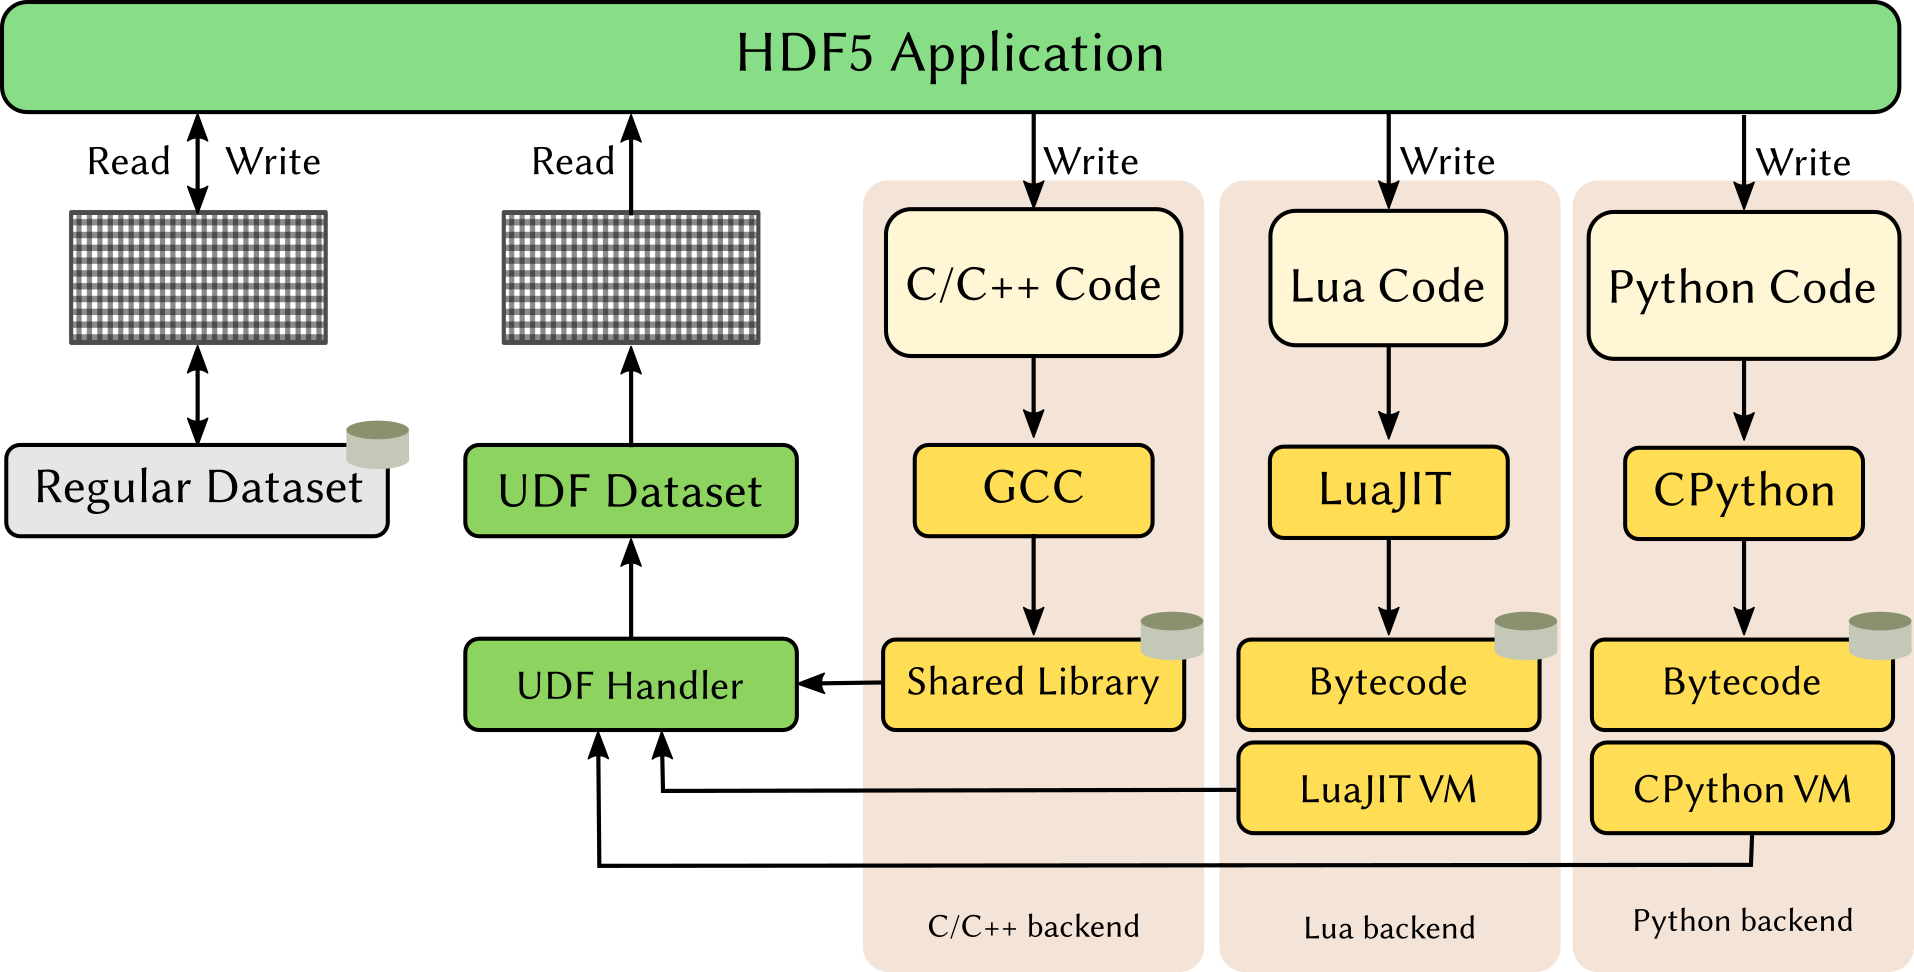 https://raw.githubusercontent.com/lucasvr/hdf5-udf/master/images/hdf5-udf.png